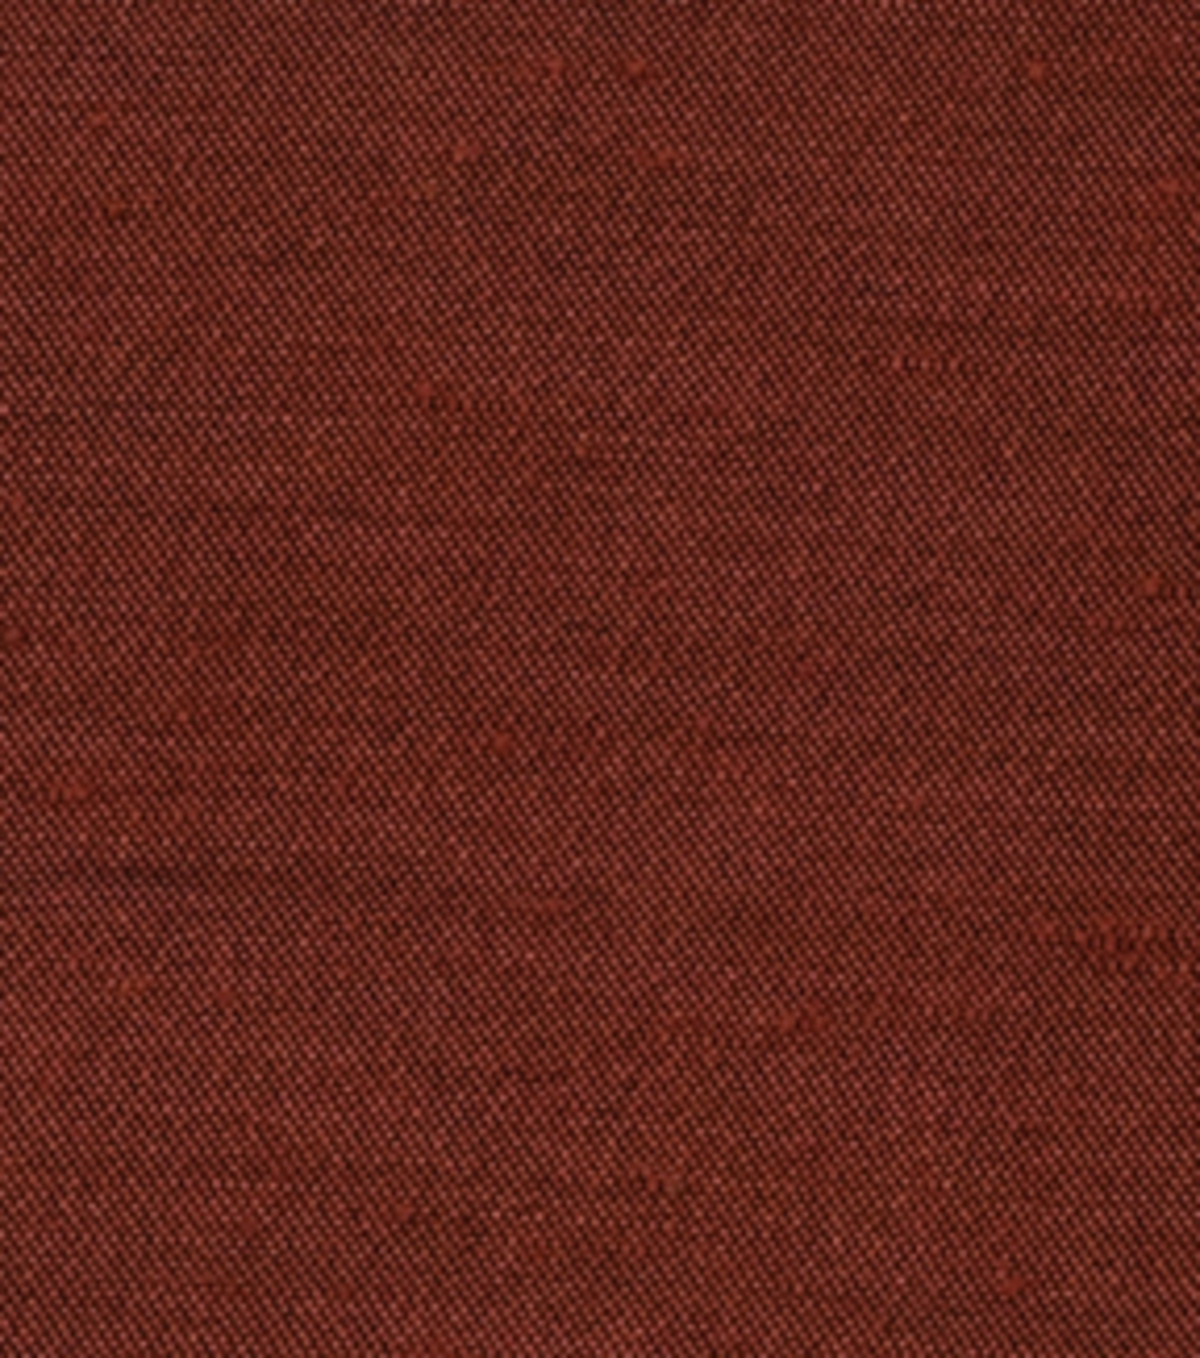 Home Decor 8\u0022x8\u0022 Fabric Swatch-Signature Series Antique Satin Sienna